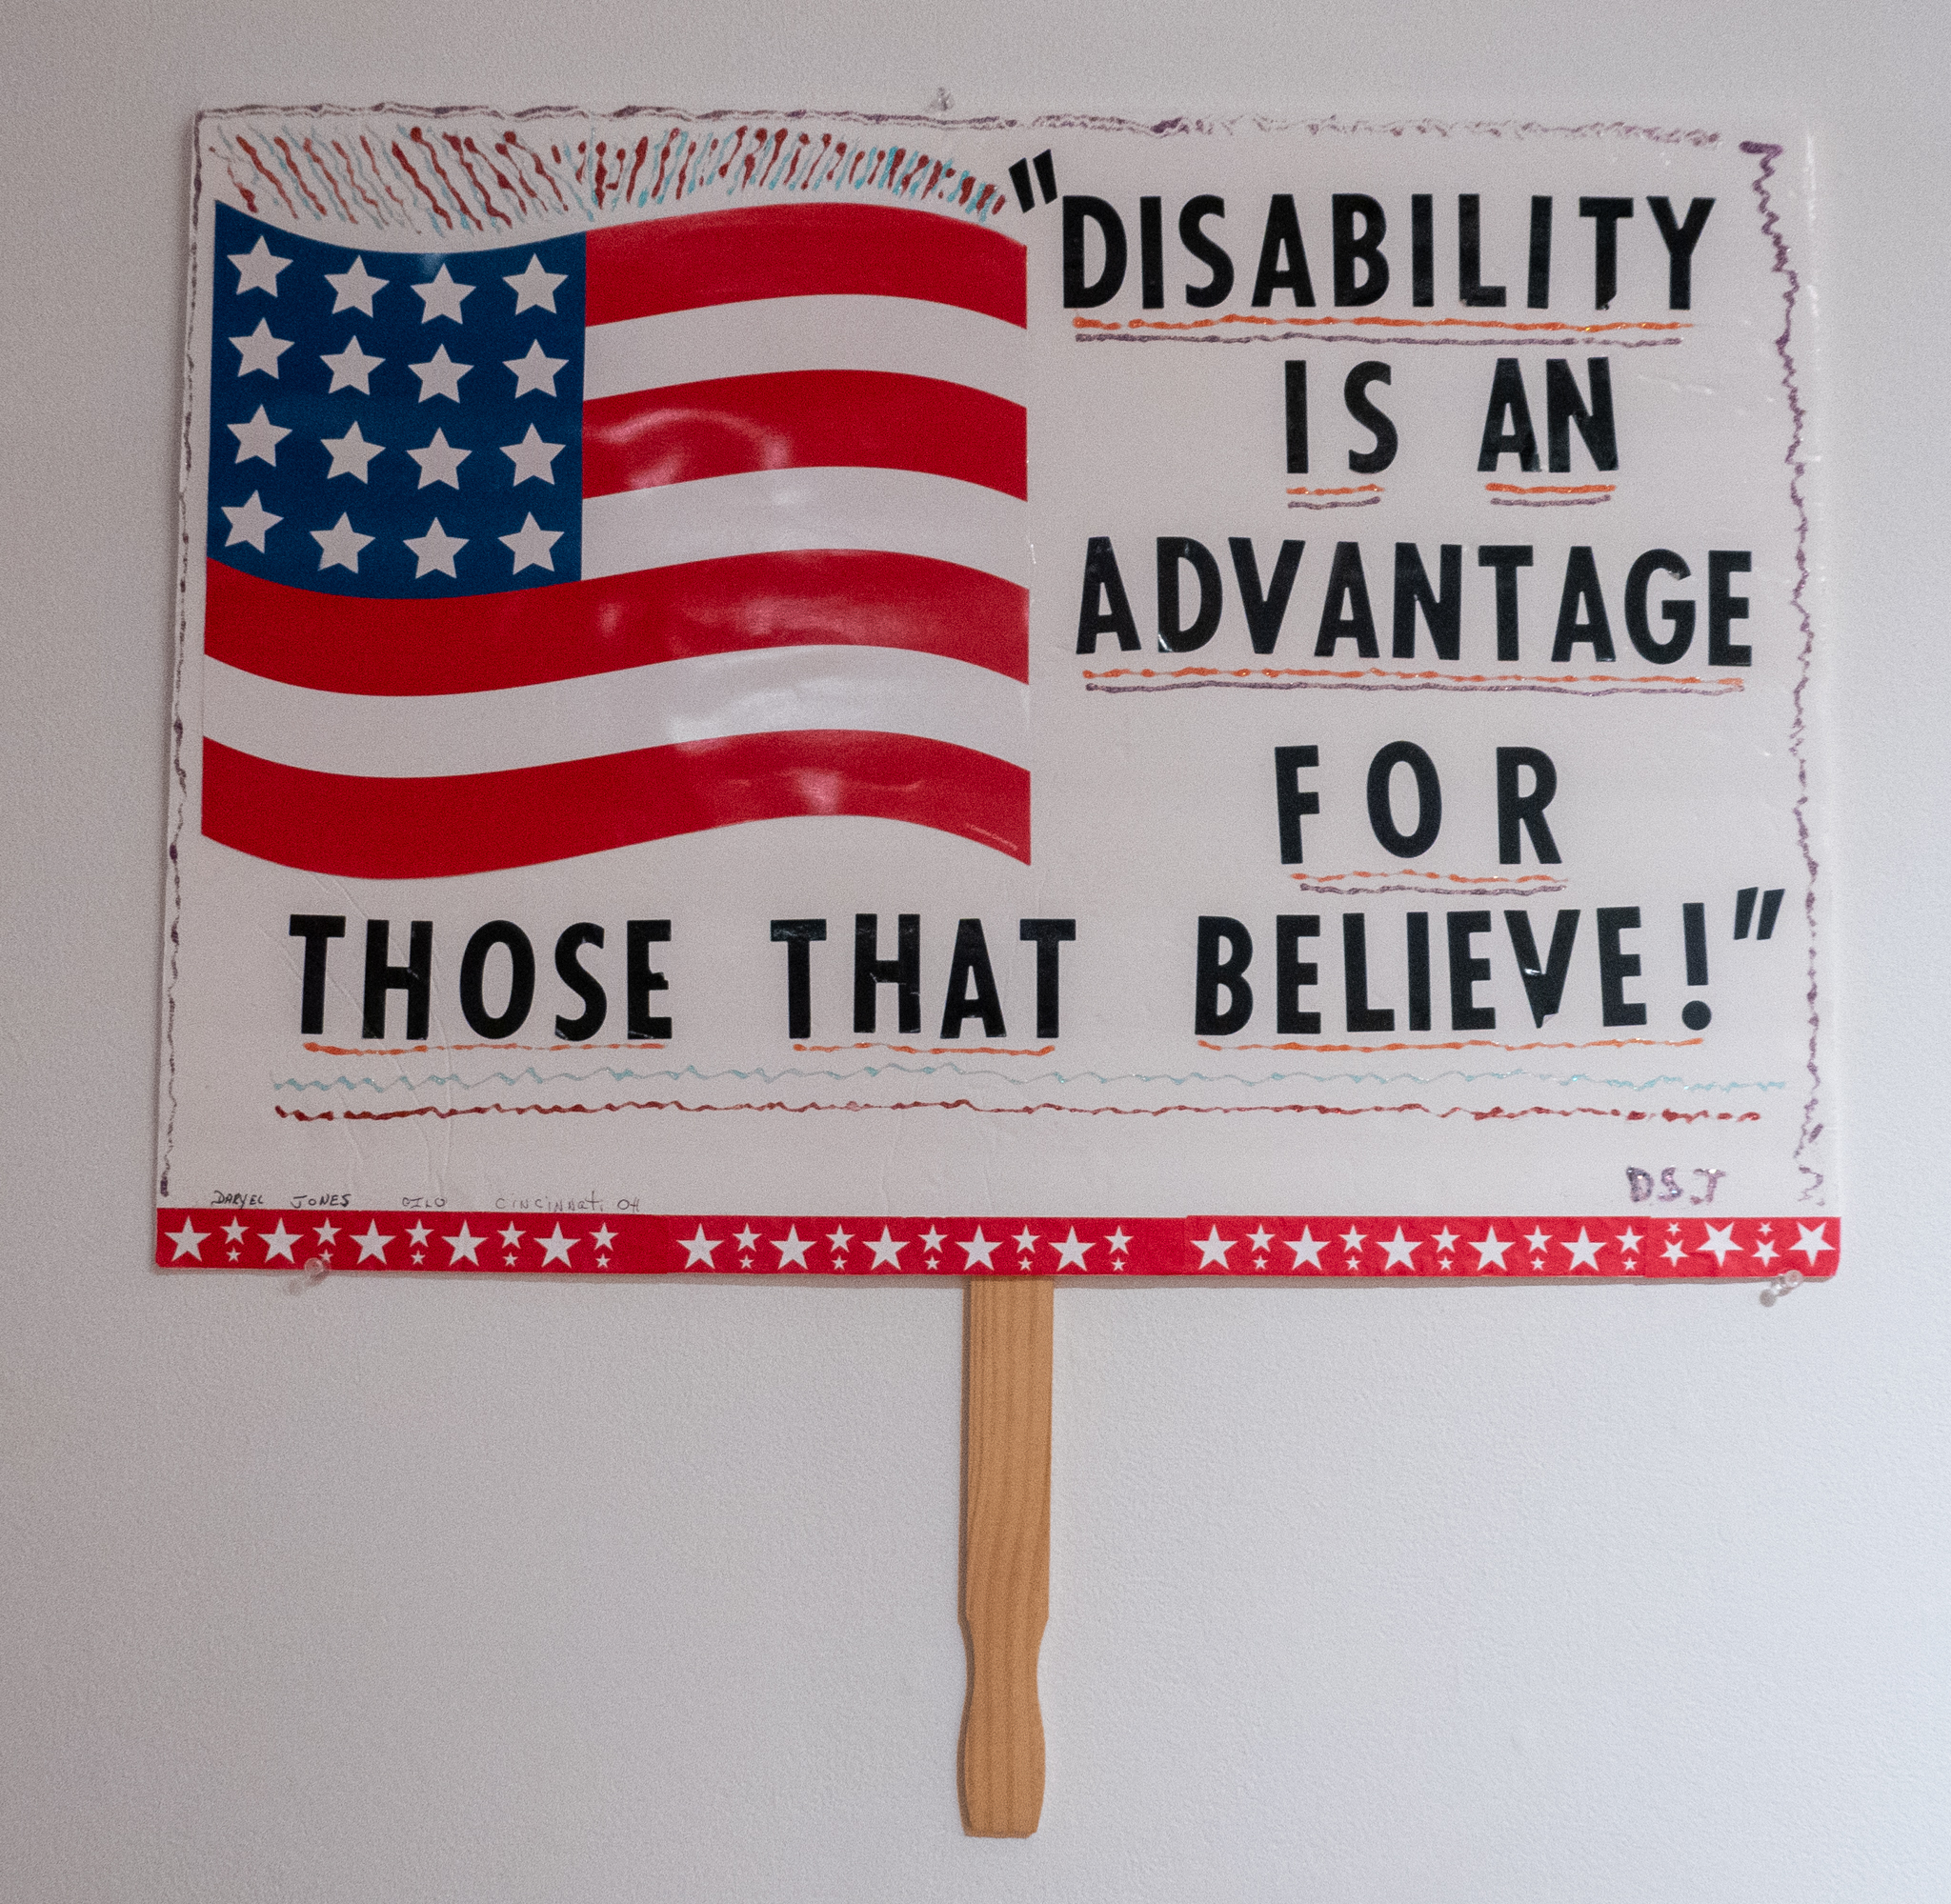 Disability is an Advantage